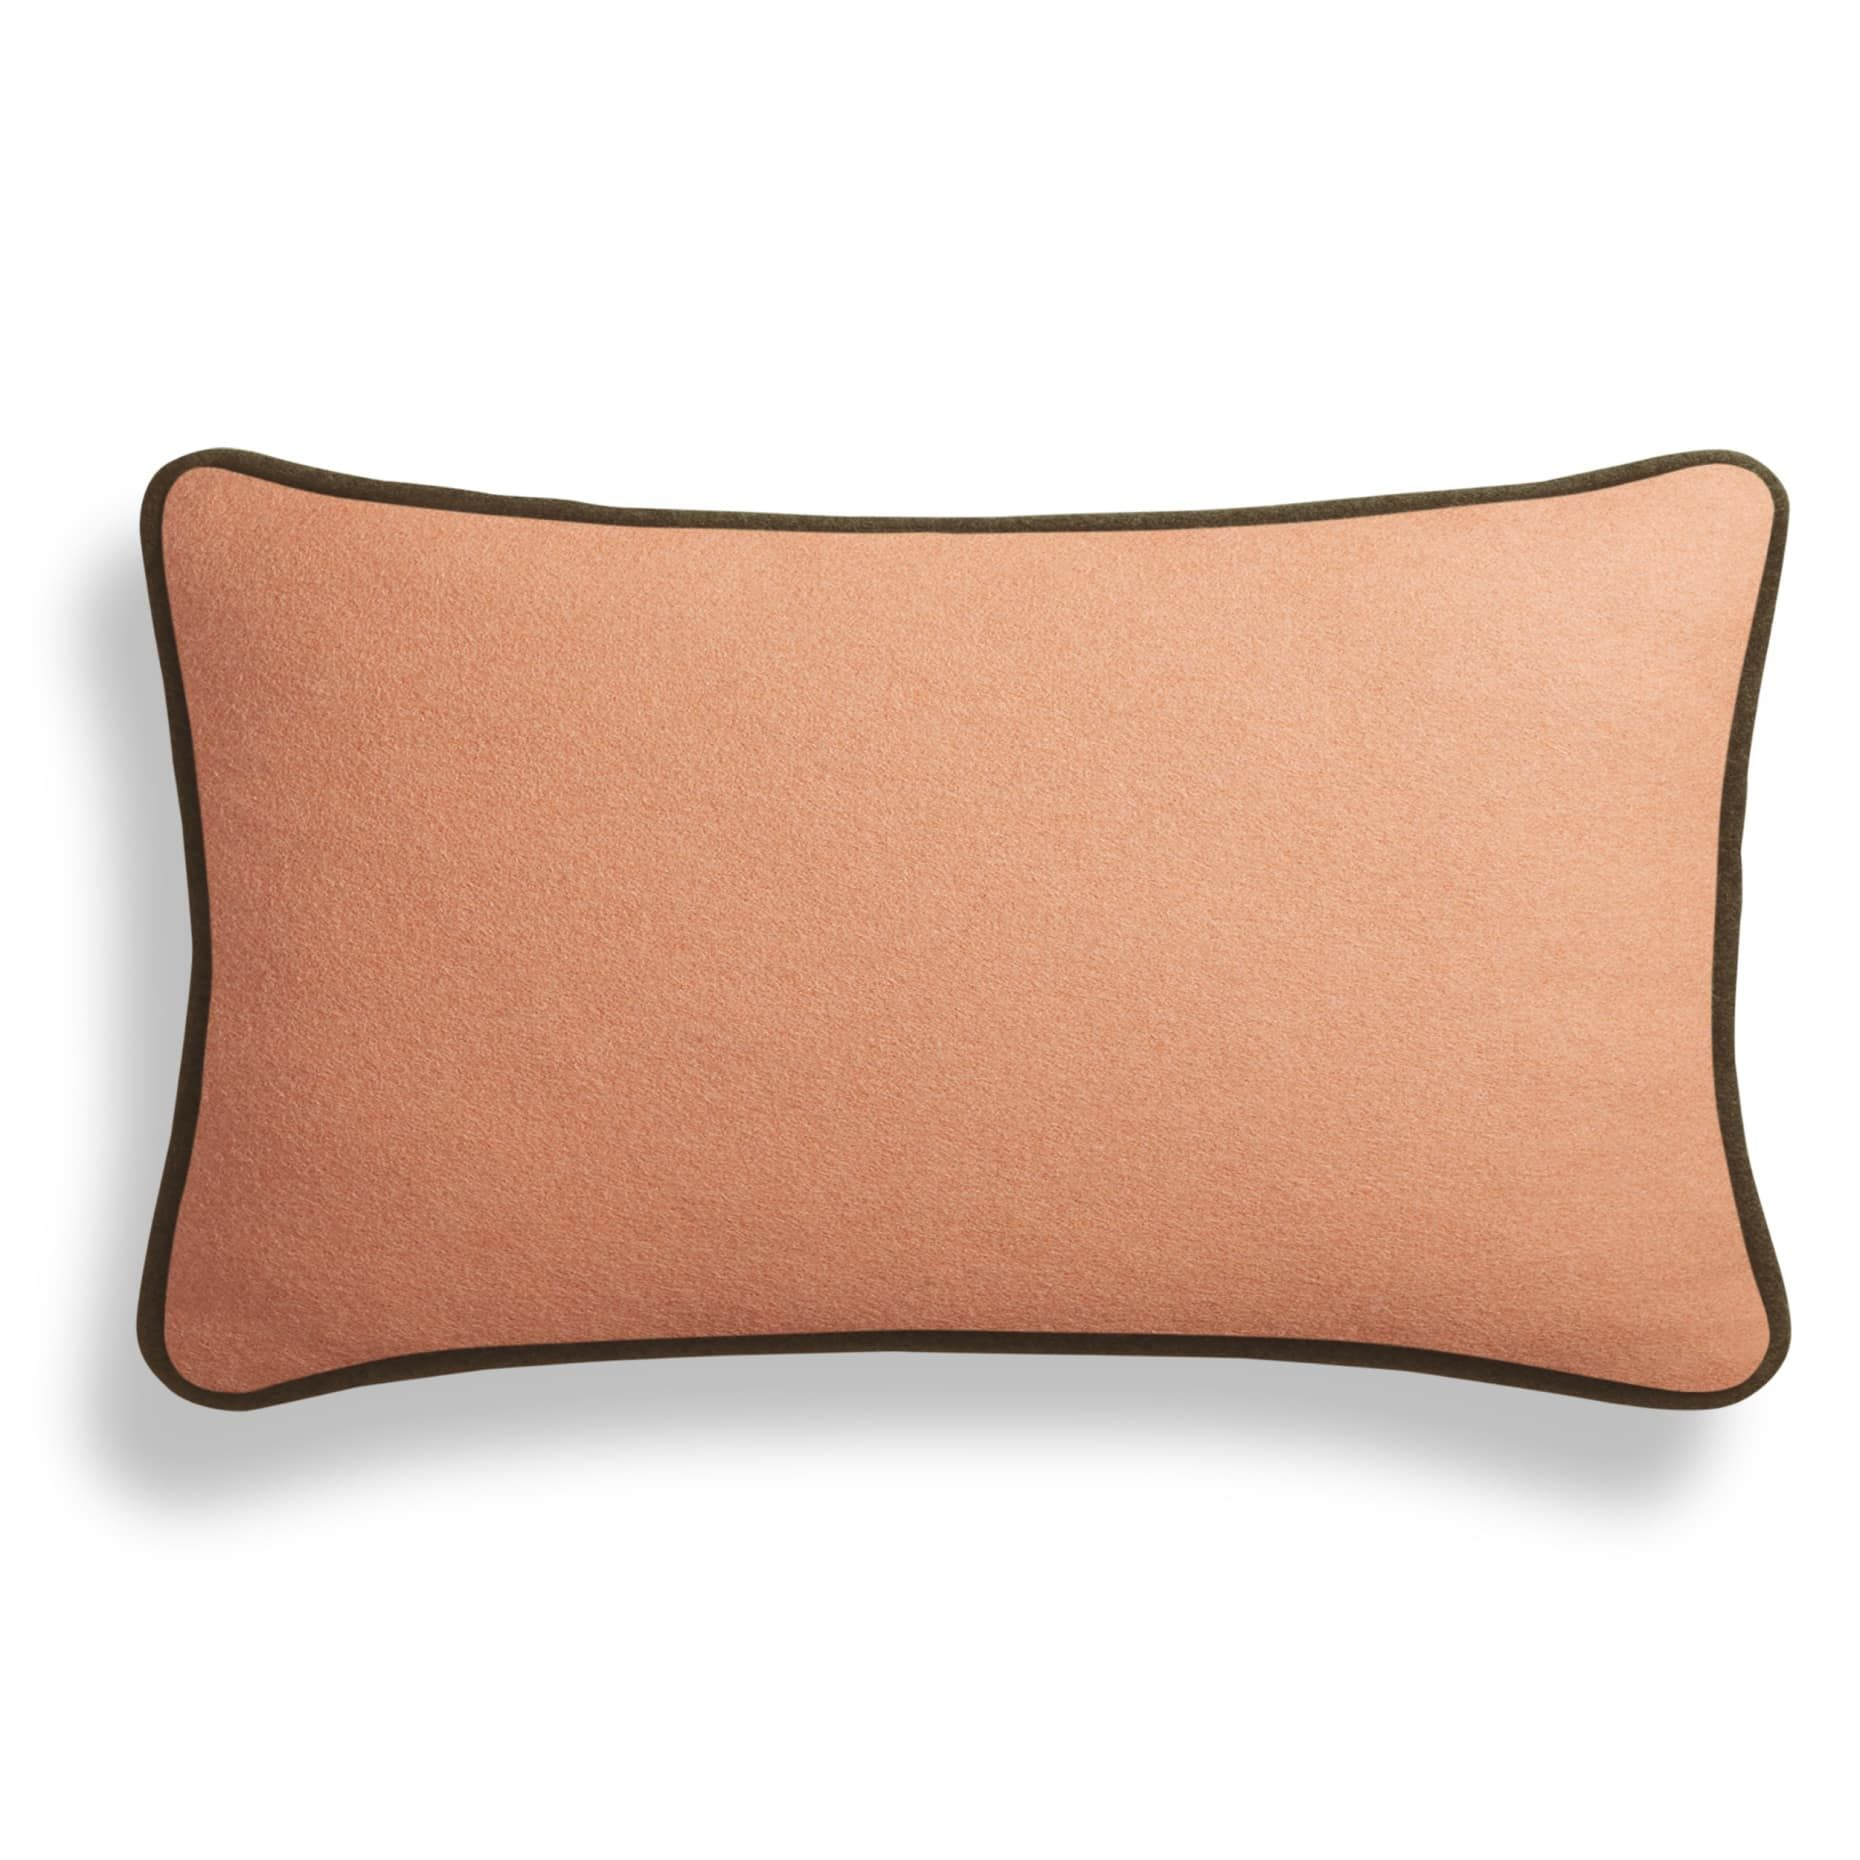 Duck 17 X 10 Lumbar Pillow